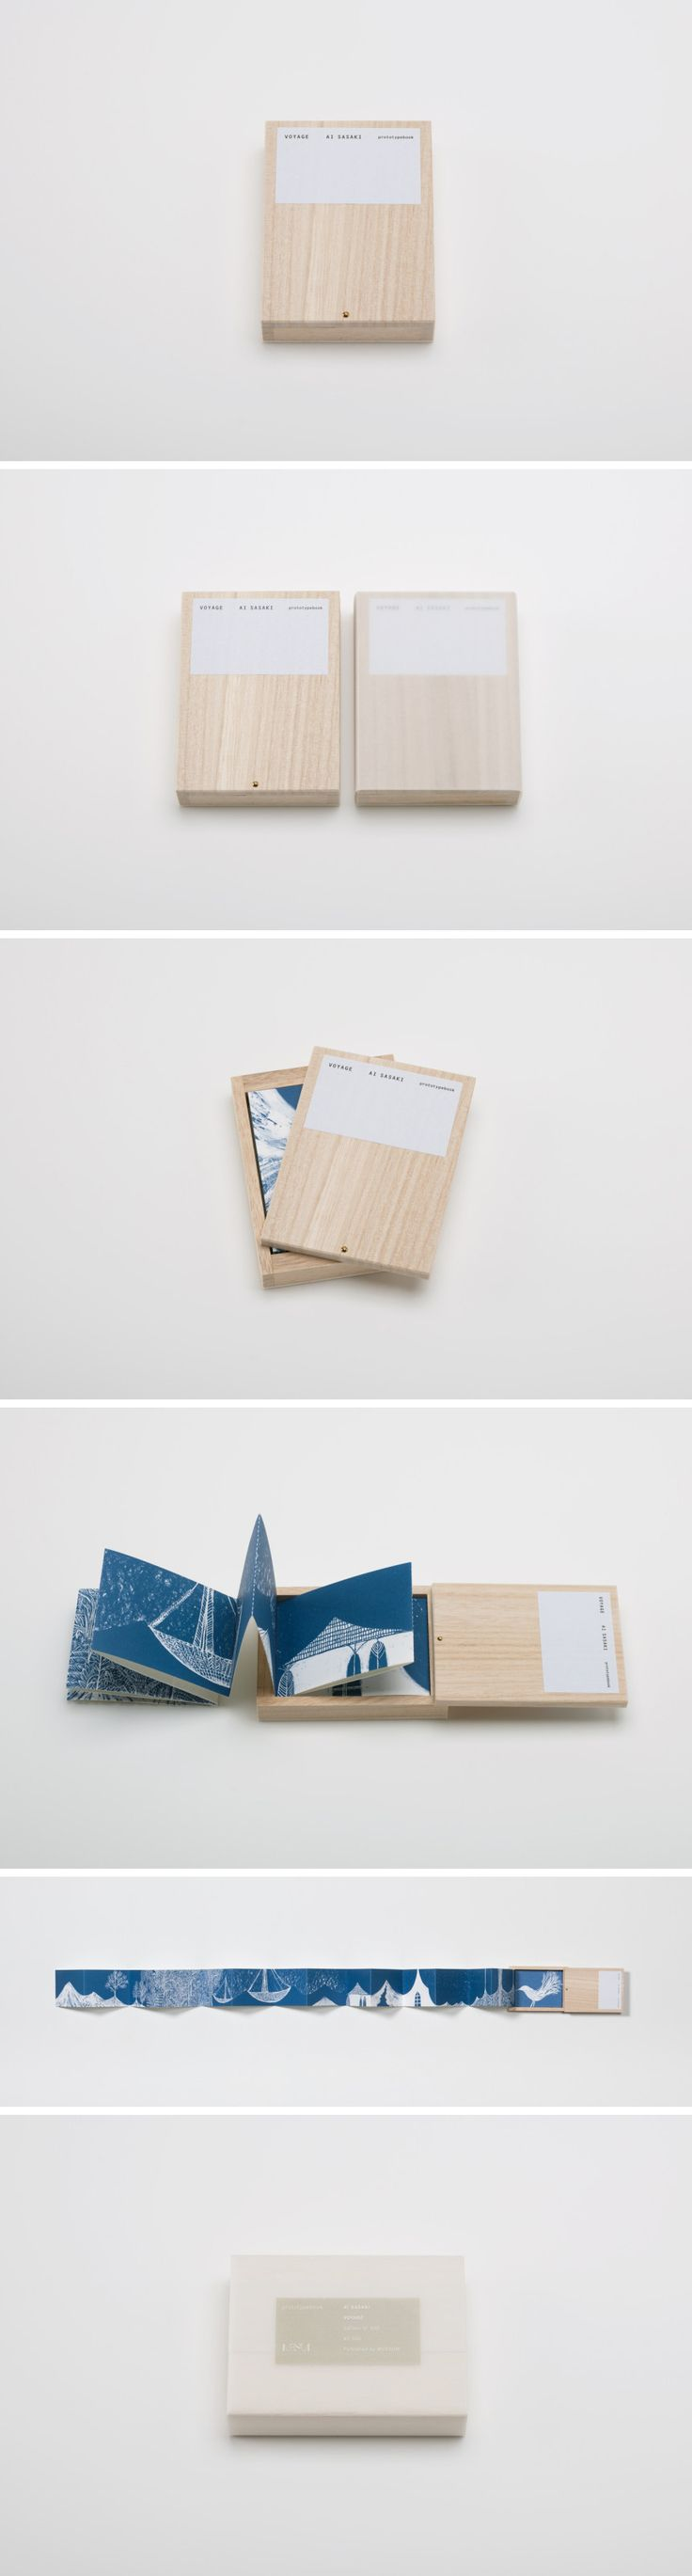 Prototypebook / Ai Sasaki: VOYAGE   Inspiration - Map the world, map opens up to reveal daily journey.  ******** reminds me of a childhood game = interactive publication